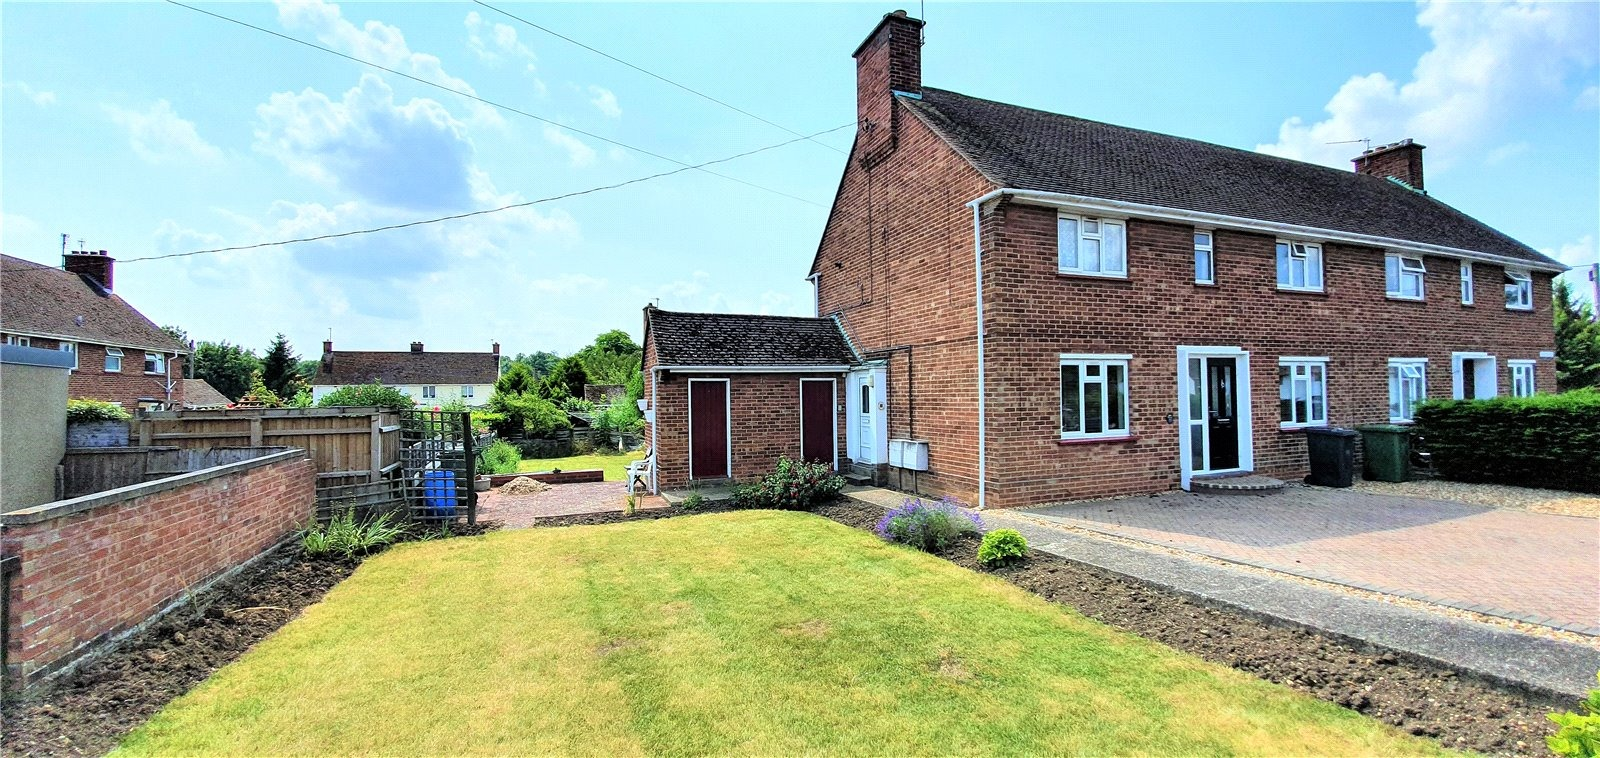 2 bed  for sale in Brookside, St. Neots, PE19